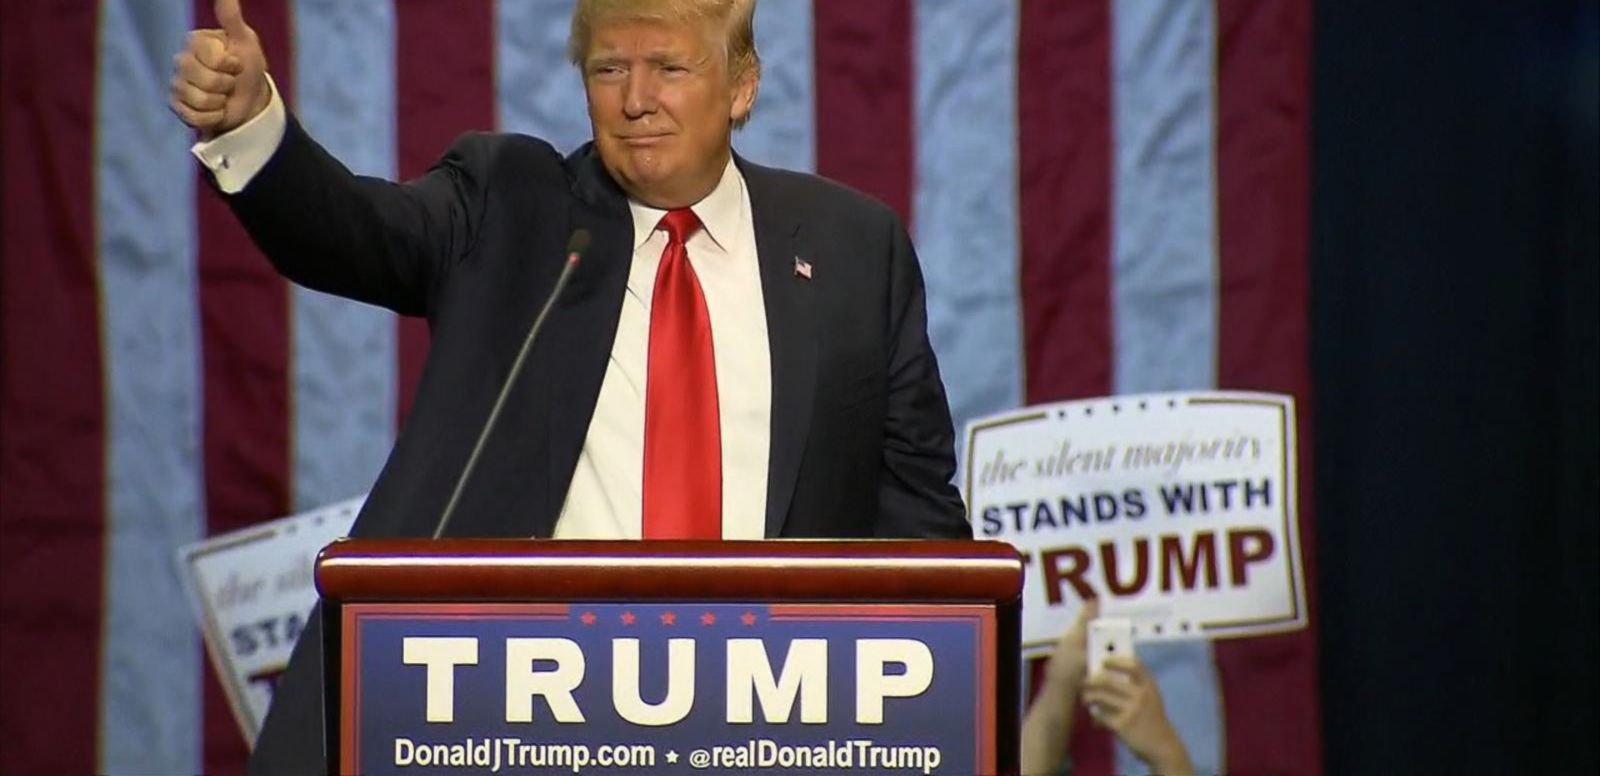 VIDEO: Trump and Carson's Controversial Statements About 9/11